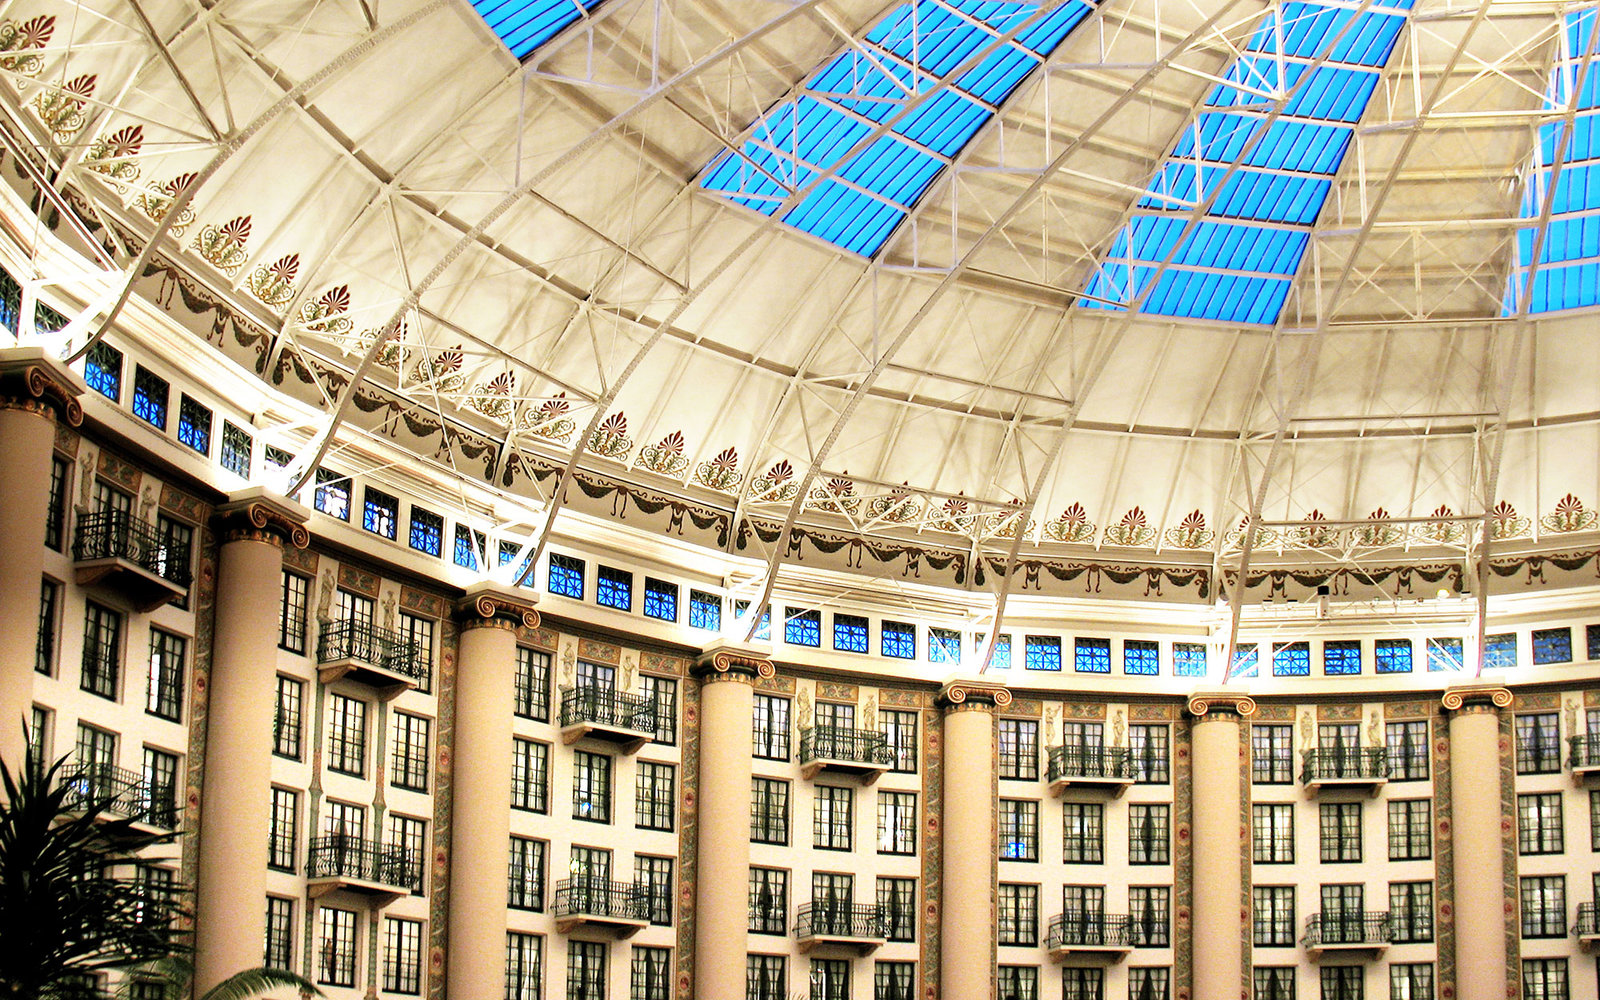 Indiana: West Baden Springs Hotel